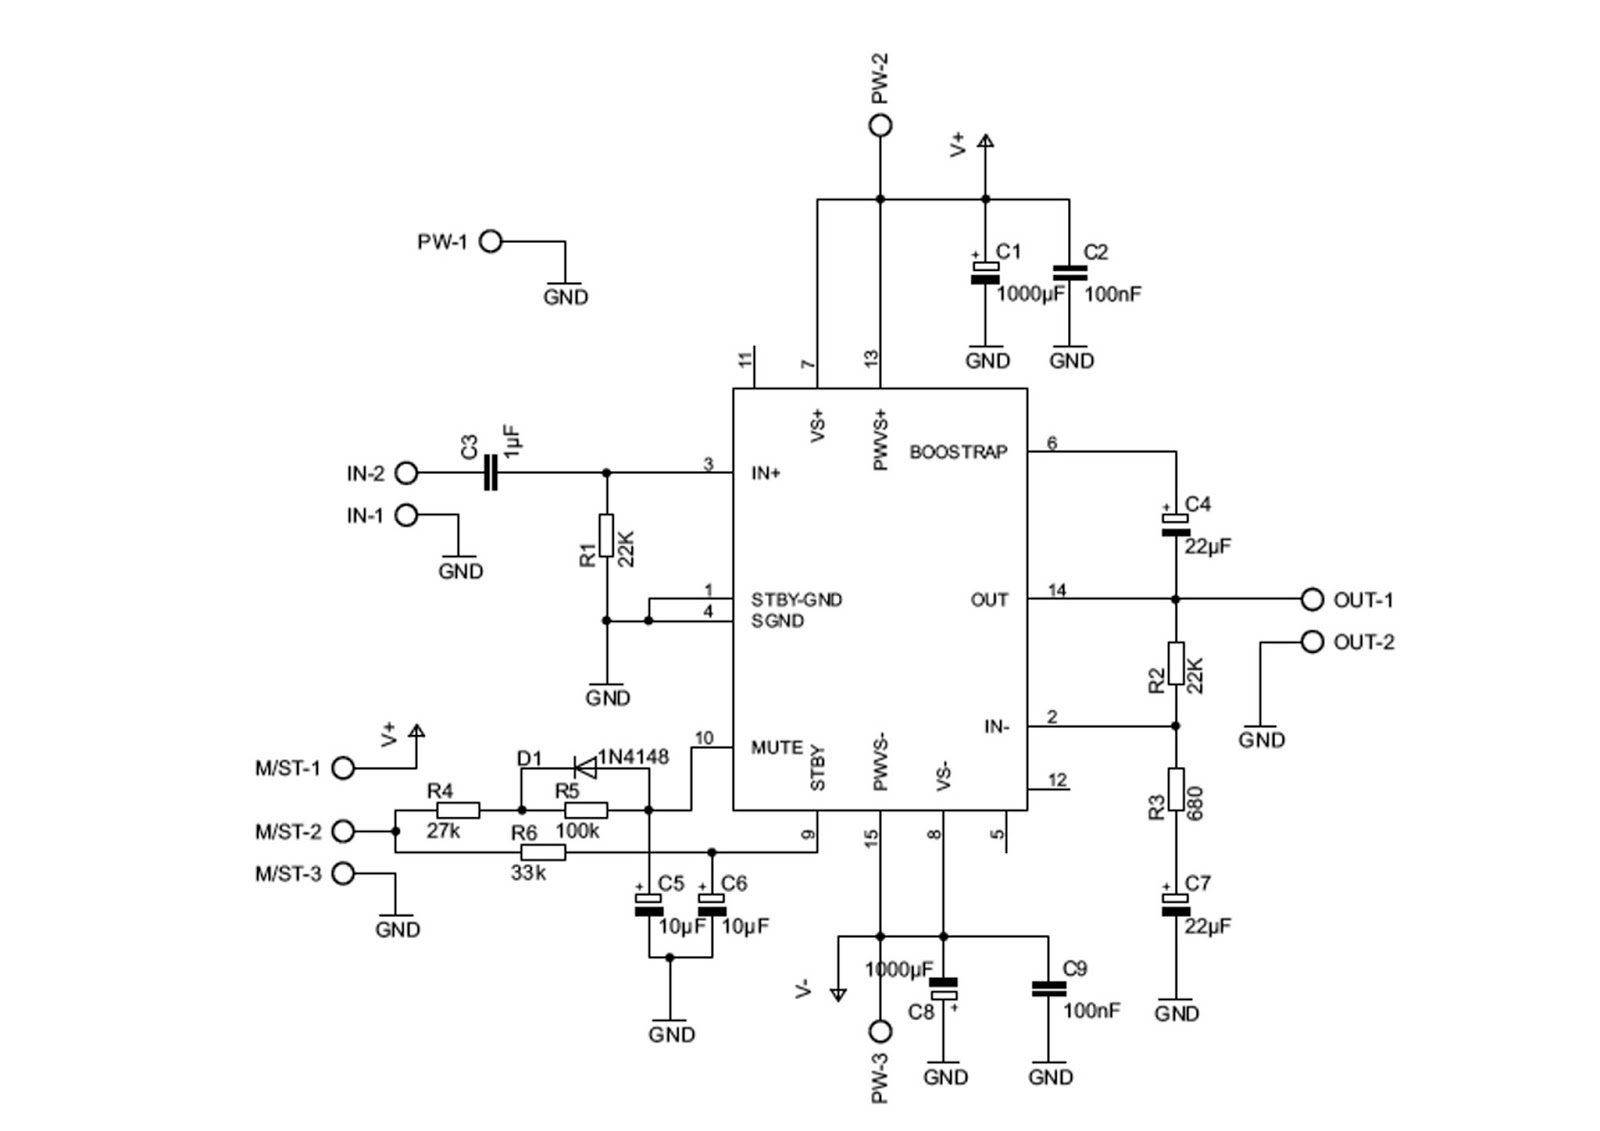 Project Expo 100 Watt Dmos Audio Amplifier With Mute St By Using 2 Watts Stereo Three Lm386 Tda7293